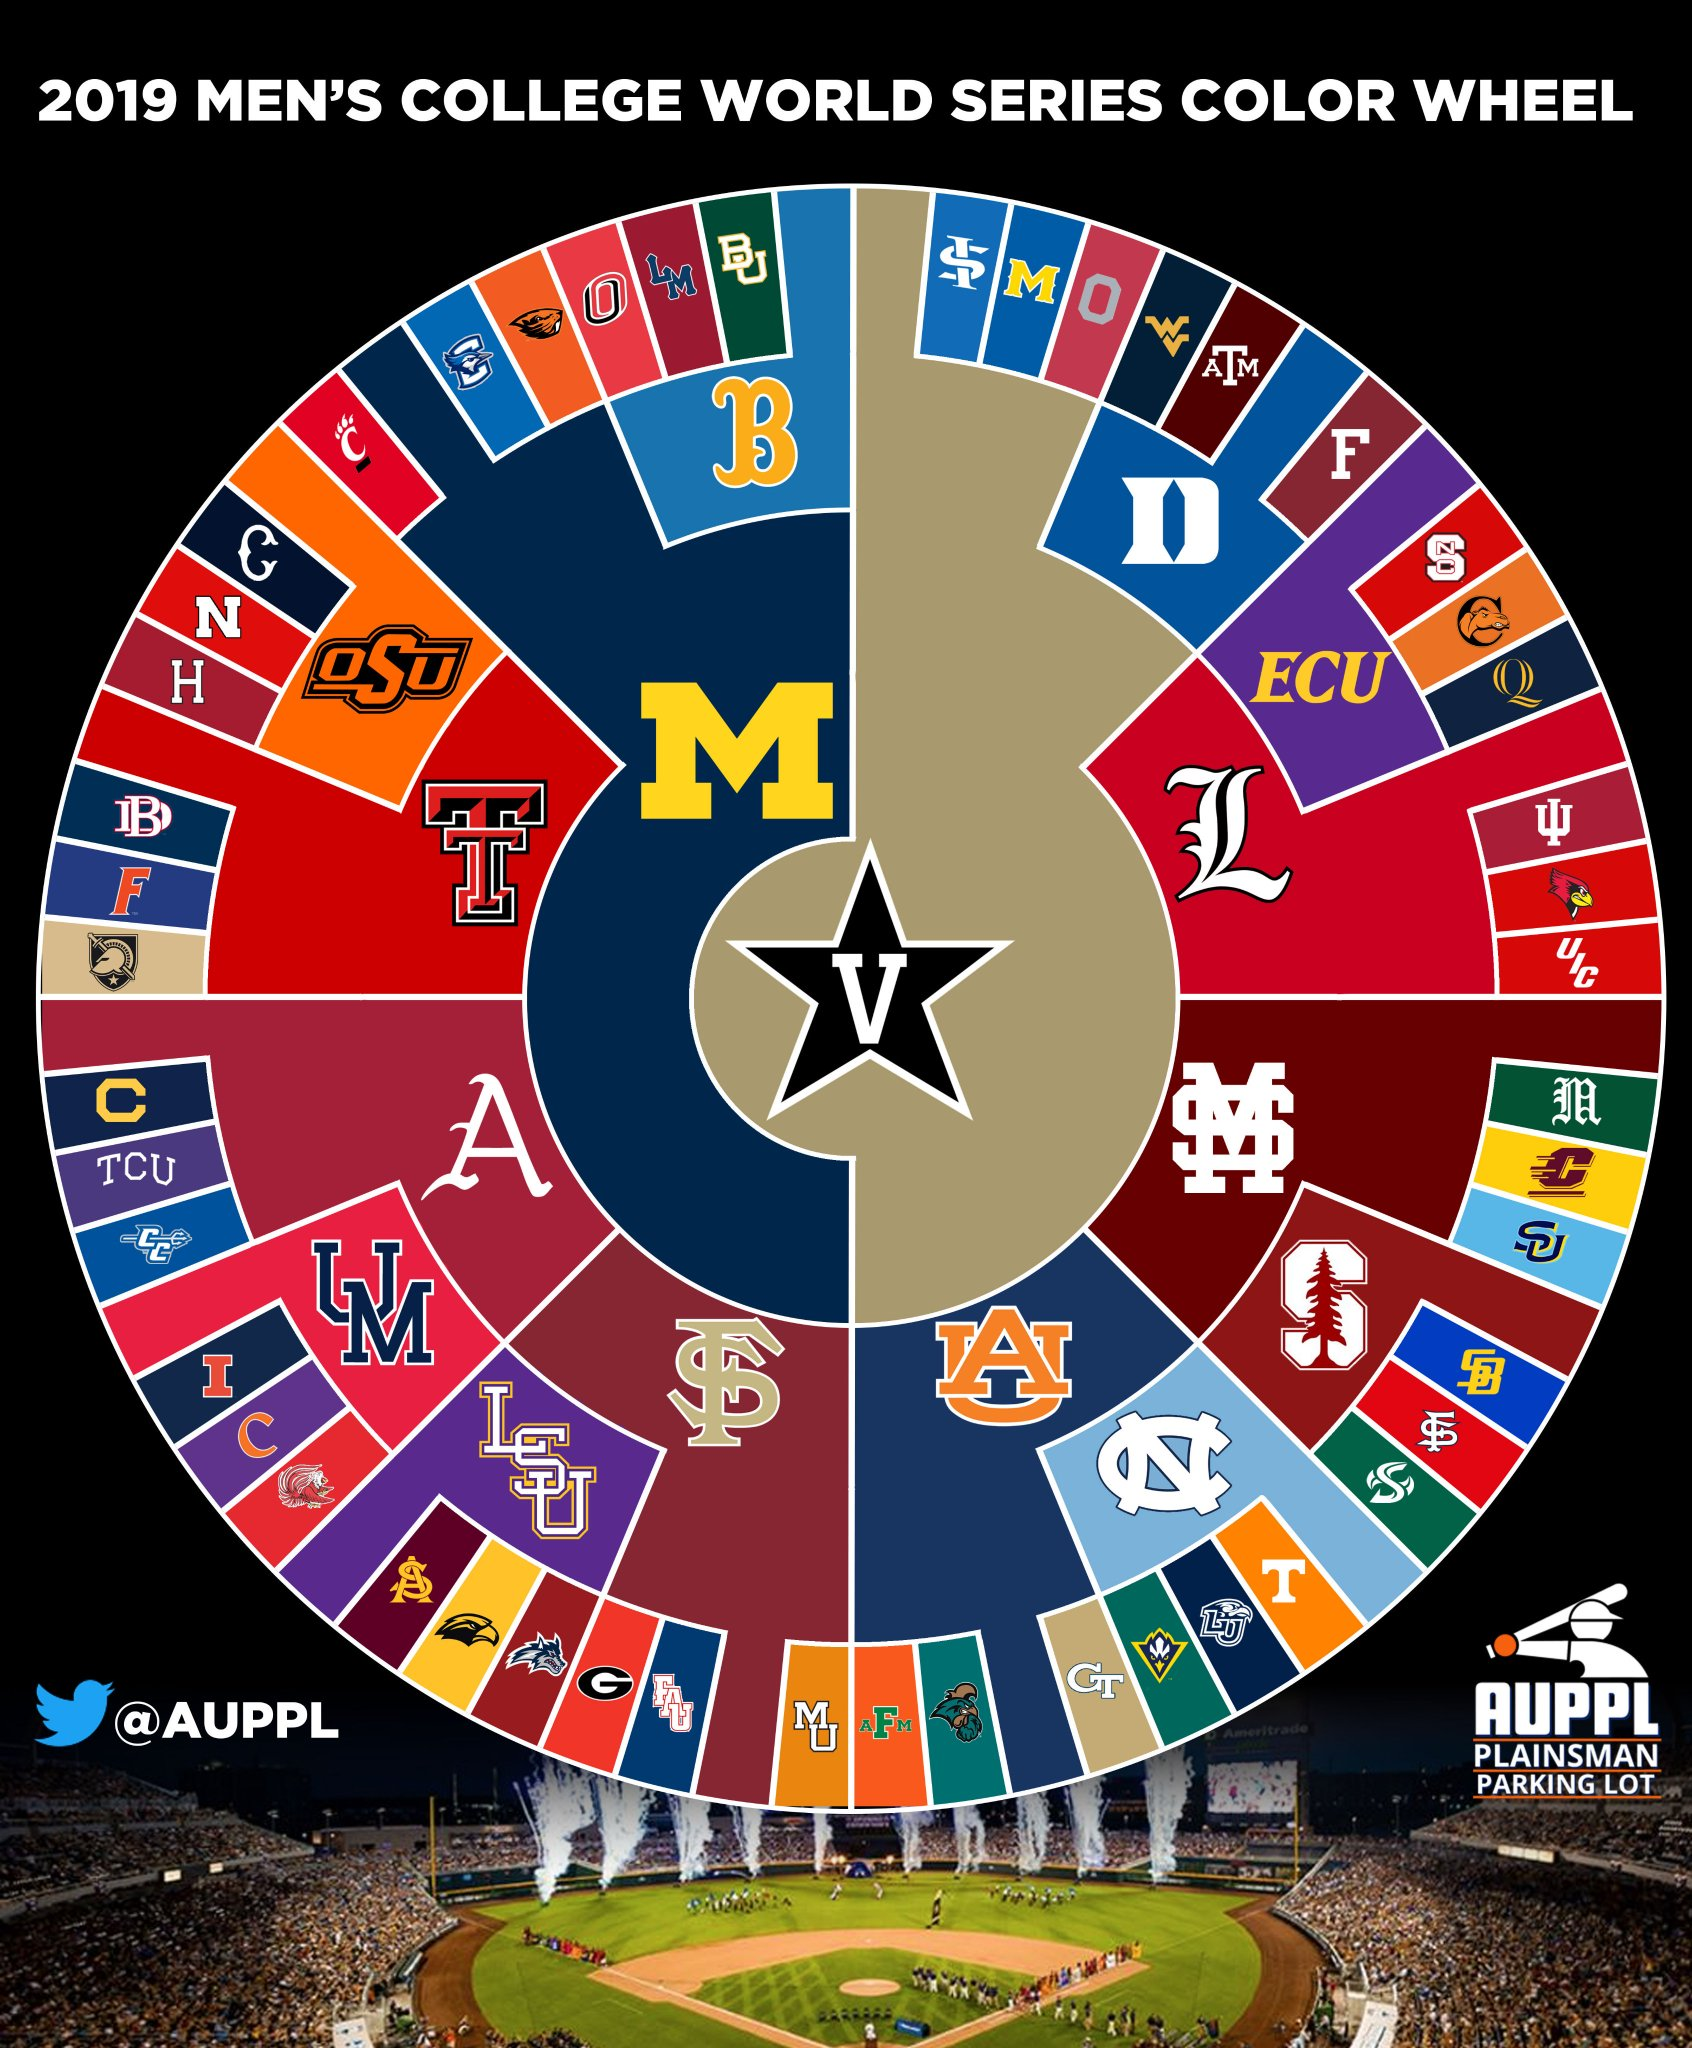 Final @NCAACWS Color 2019 Color Wheel   Vandy takes the final circle. Congrats. #AnchorDown https://t.co/h2hTpPRZzT